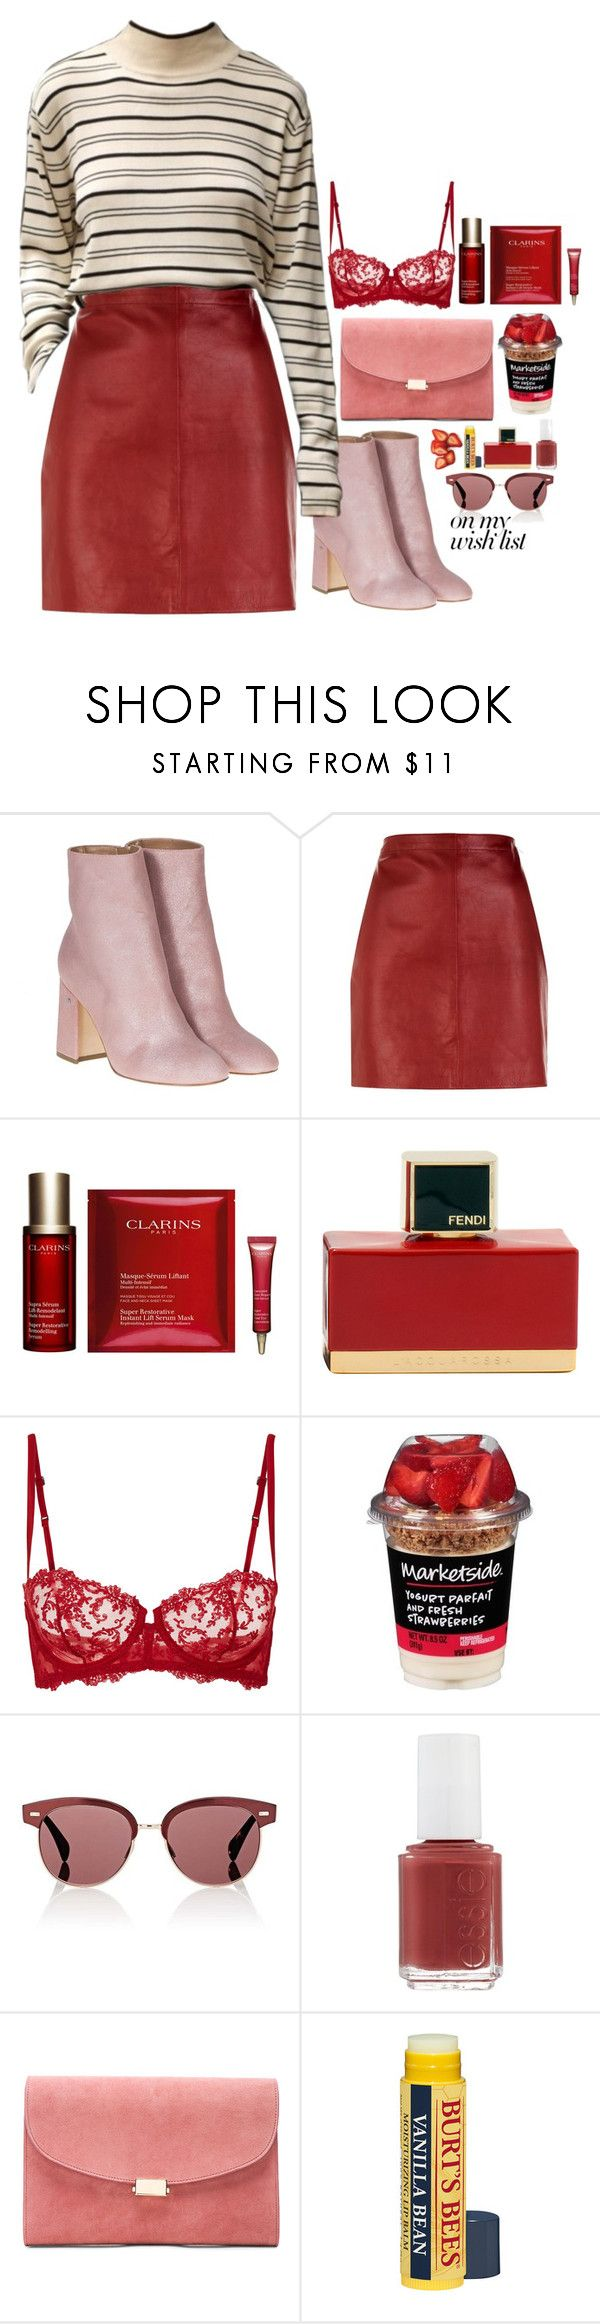 """#PolyPresents: Wish List"" by lenabitkina ❤ liked on Polyvore featuring Laurence Dacade, Sandro, Clarins, Disney, Fendi, La Perla, Oliver Peoples, Essie, Mansur Gavriel and contestentry"